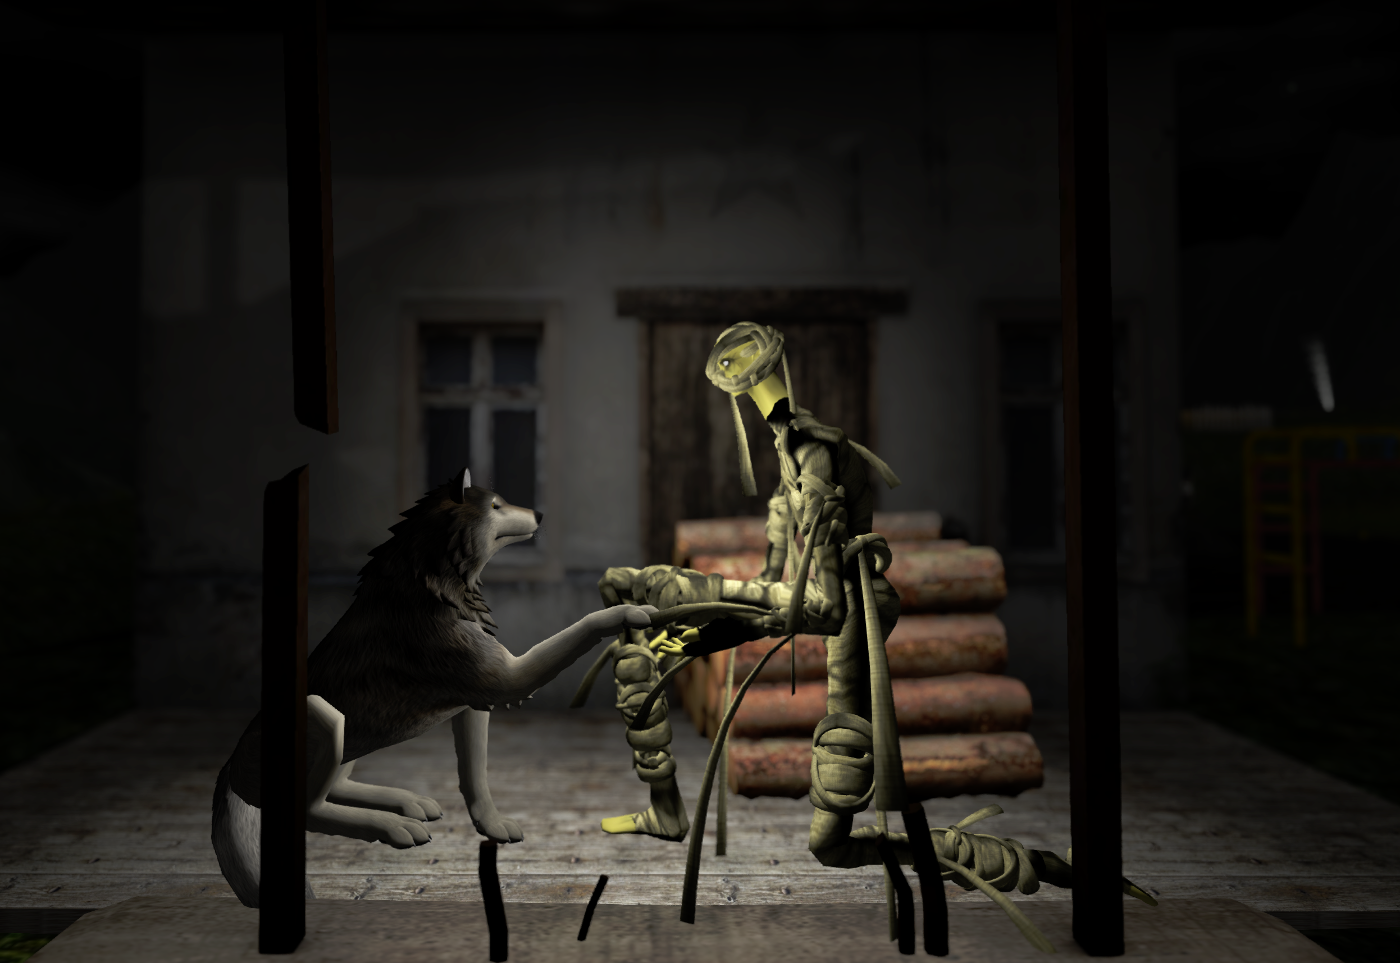 The mummy greets the wolf: diversity in SL